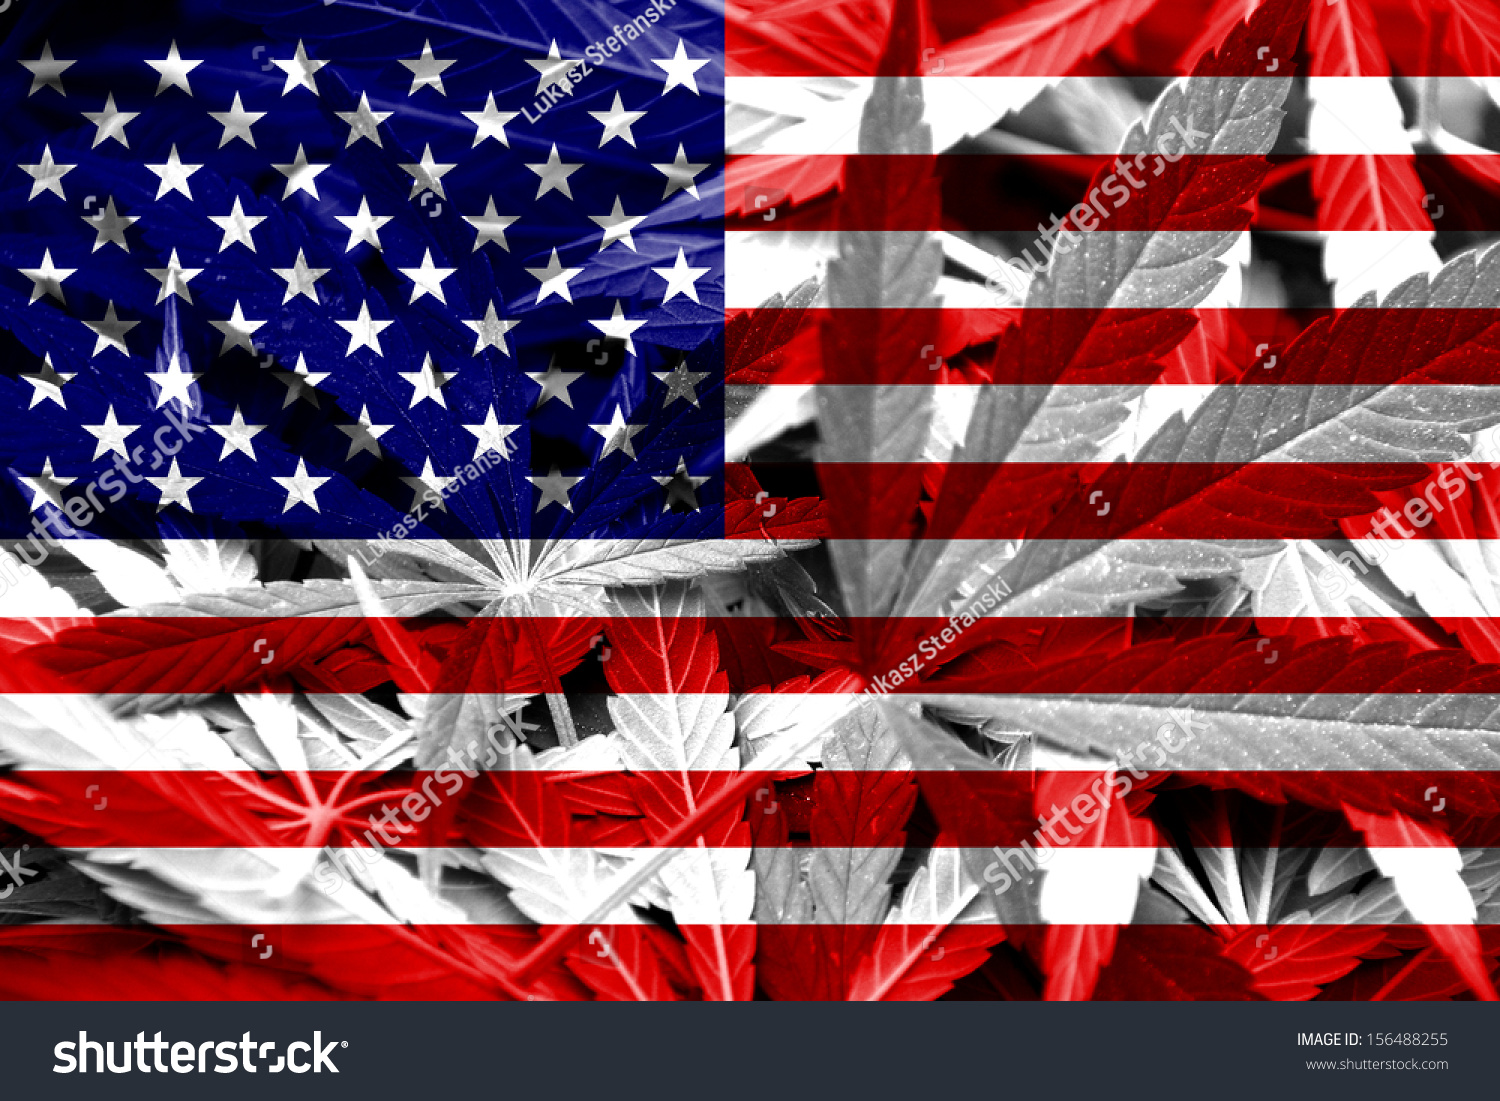 united states drug policy essay The office of national drug control policy (ondcp) works to reduce drug use and its consequences by leading and coordinating the development, implementation, and.